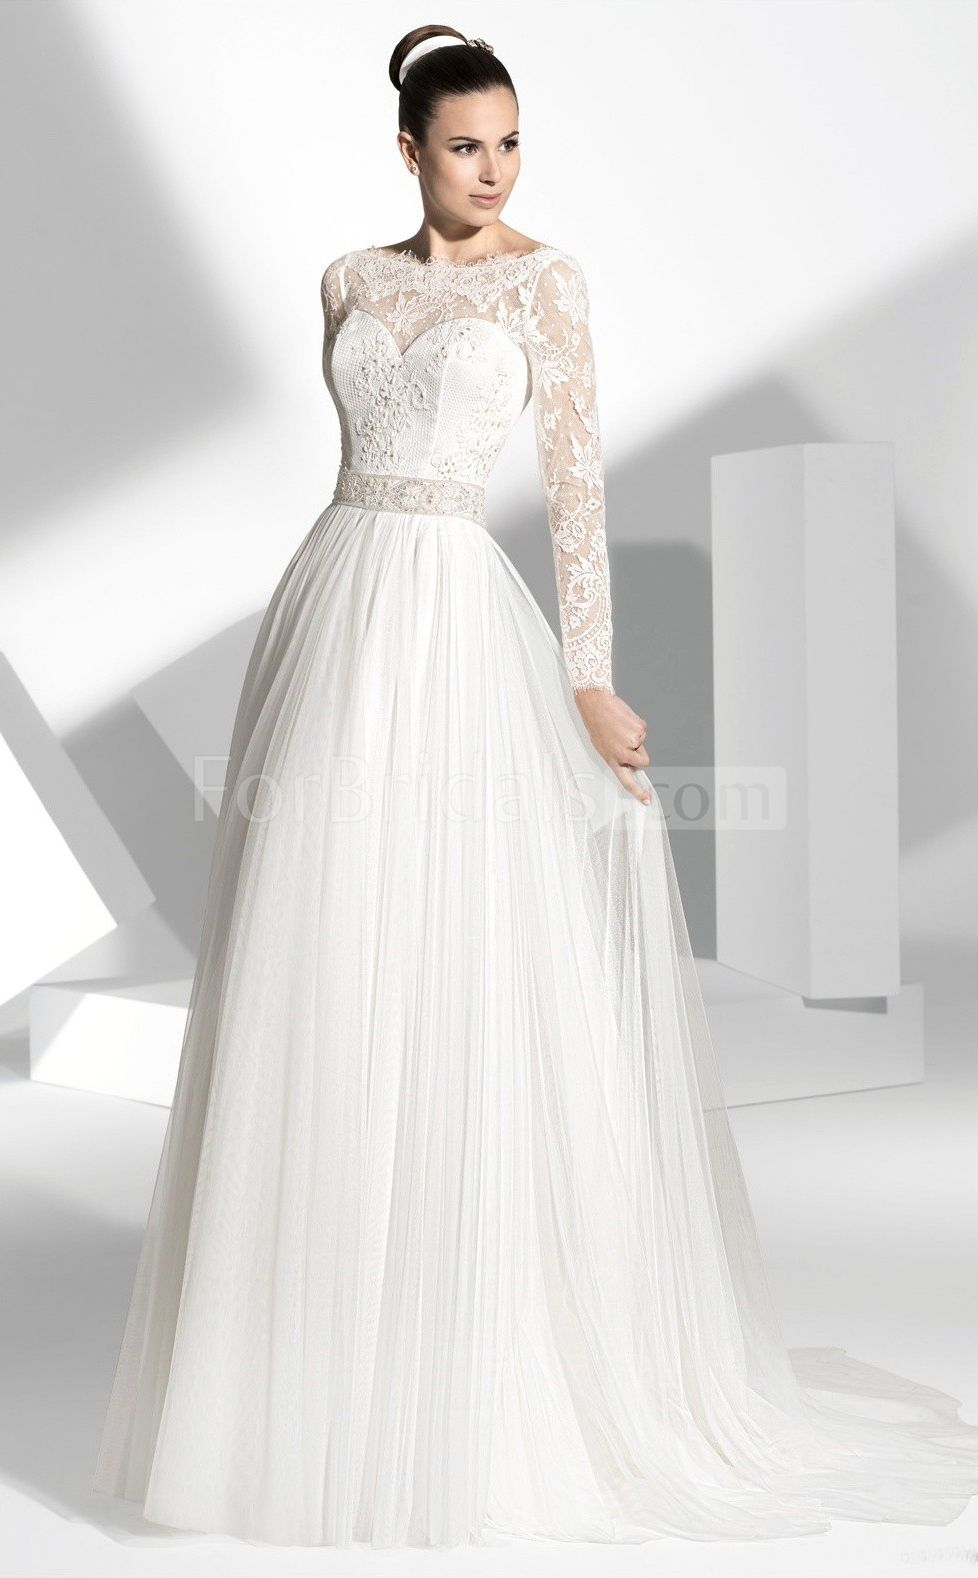 Long sleeve wedding dresswedding dresses with sleeves unique